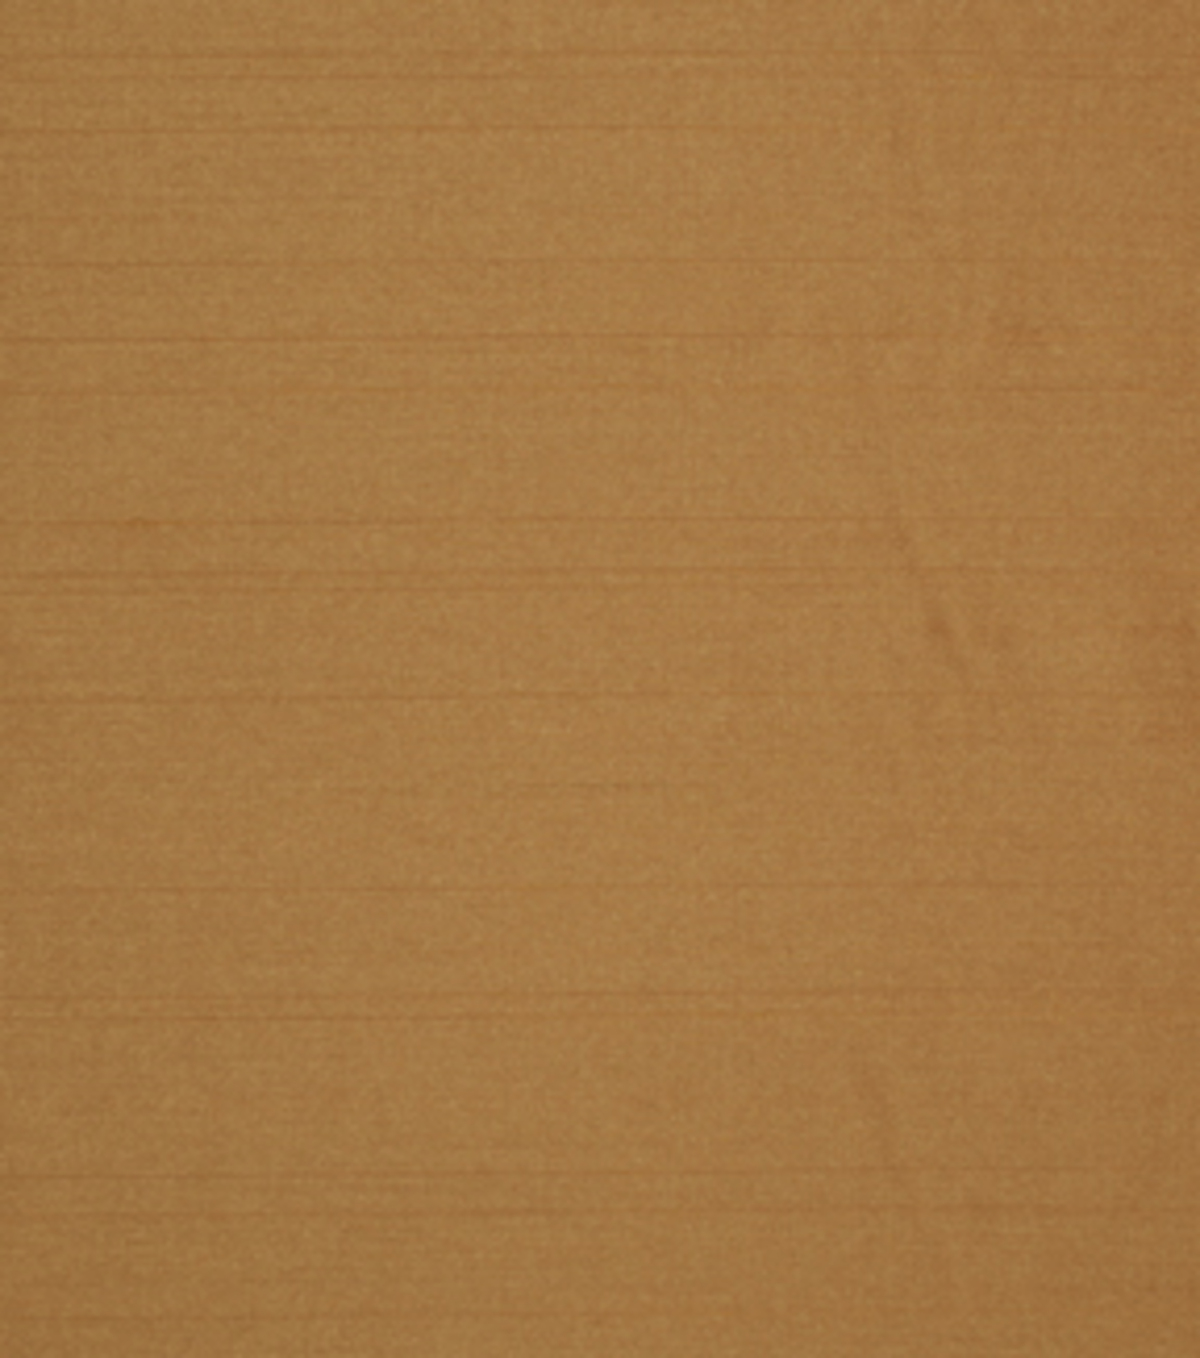 Home Decor 8\u0022x8\u0022 Fabric Swatch-Signature Series Bravo Terra Cotta